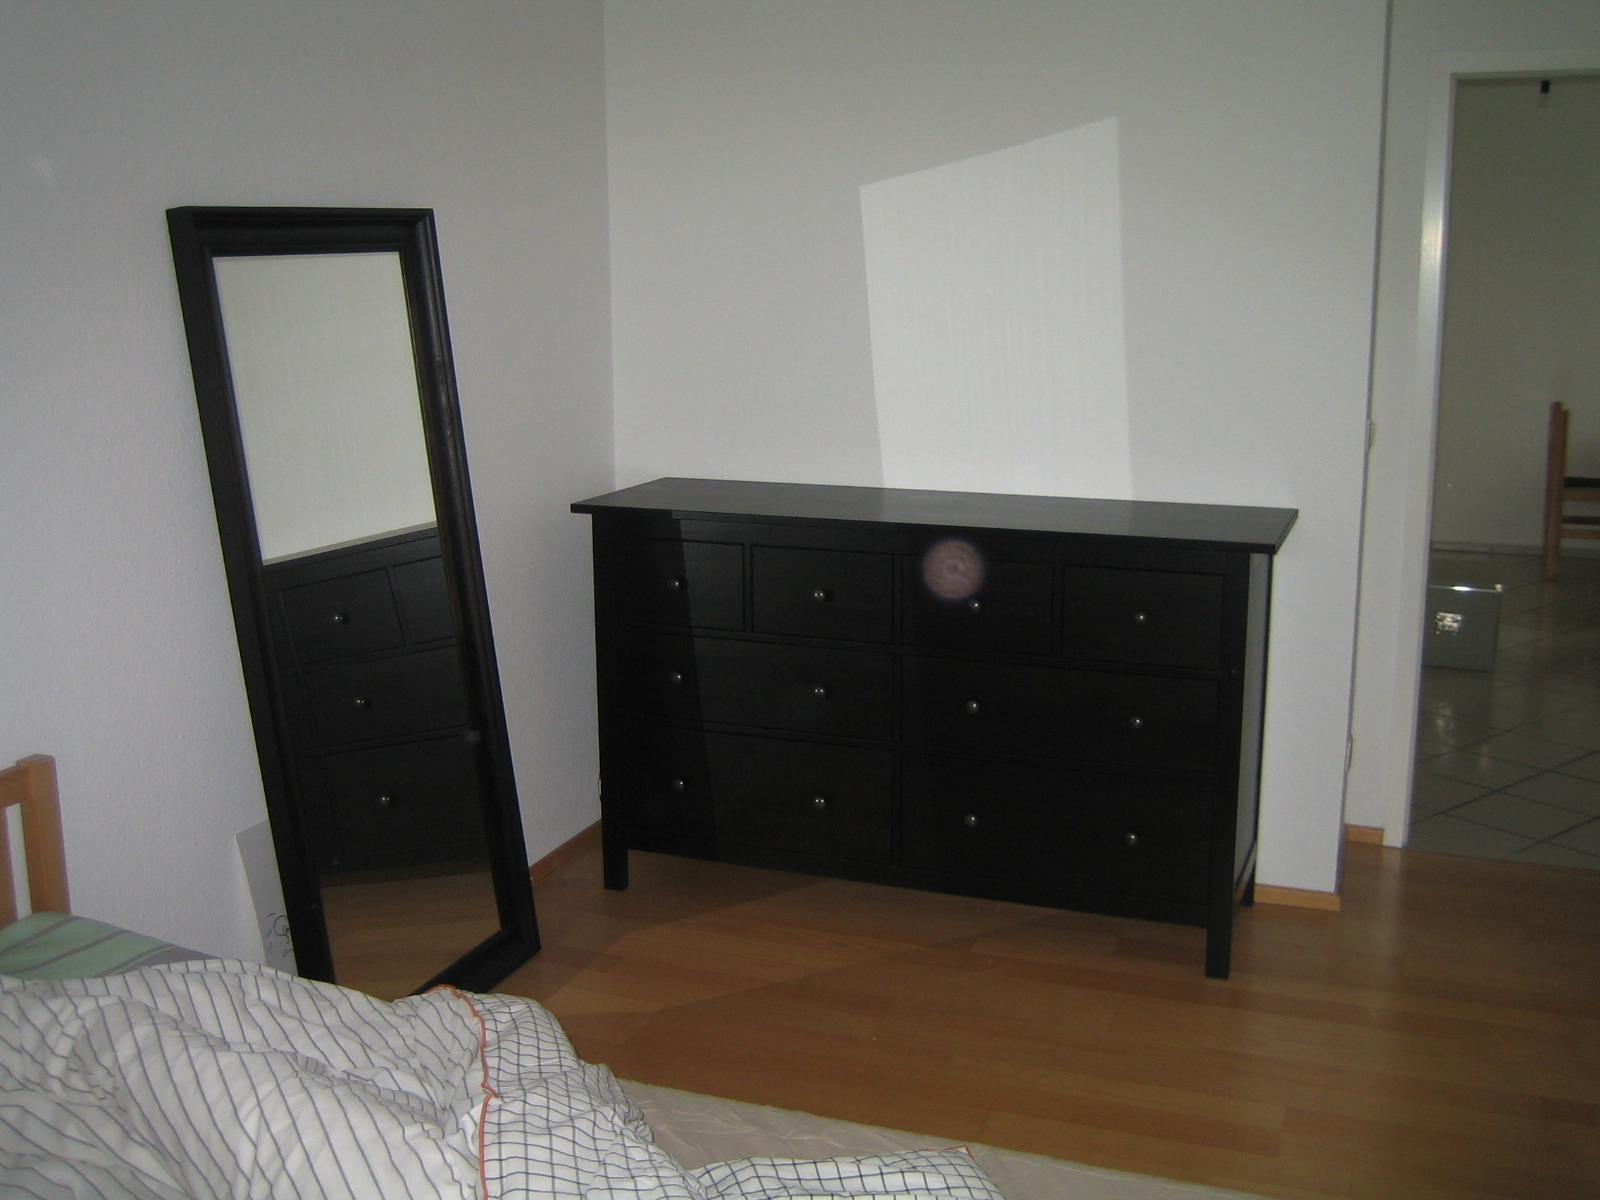 ikea kleine kommode mit eine klappe und eine schublade die neueste innovation der. Black Bedroom Furniture Sets. Home Design Ideas